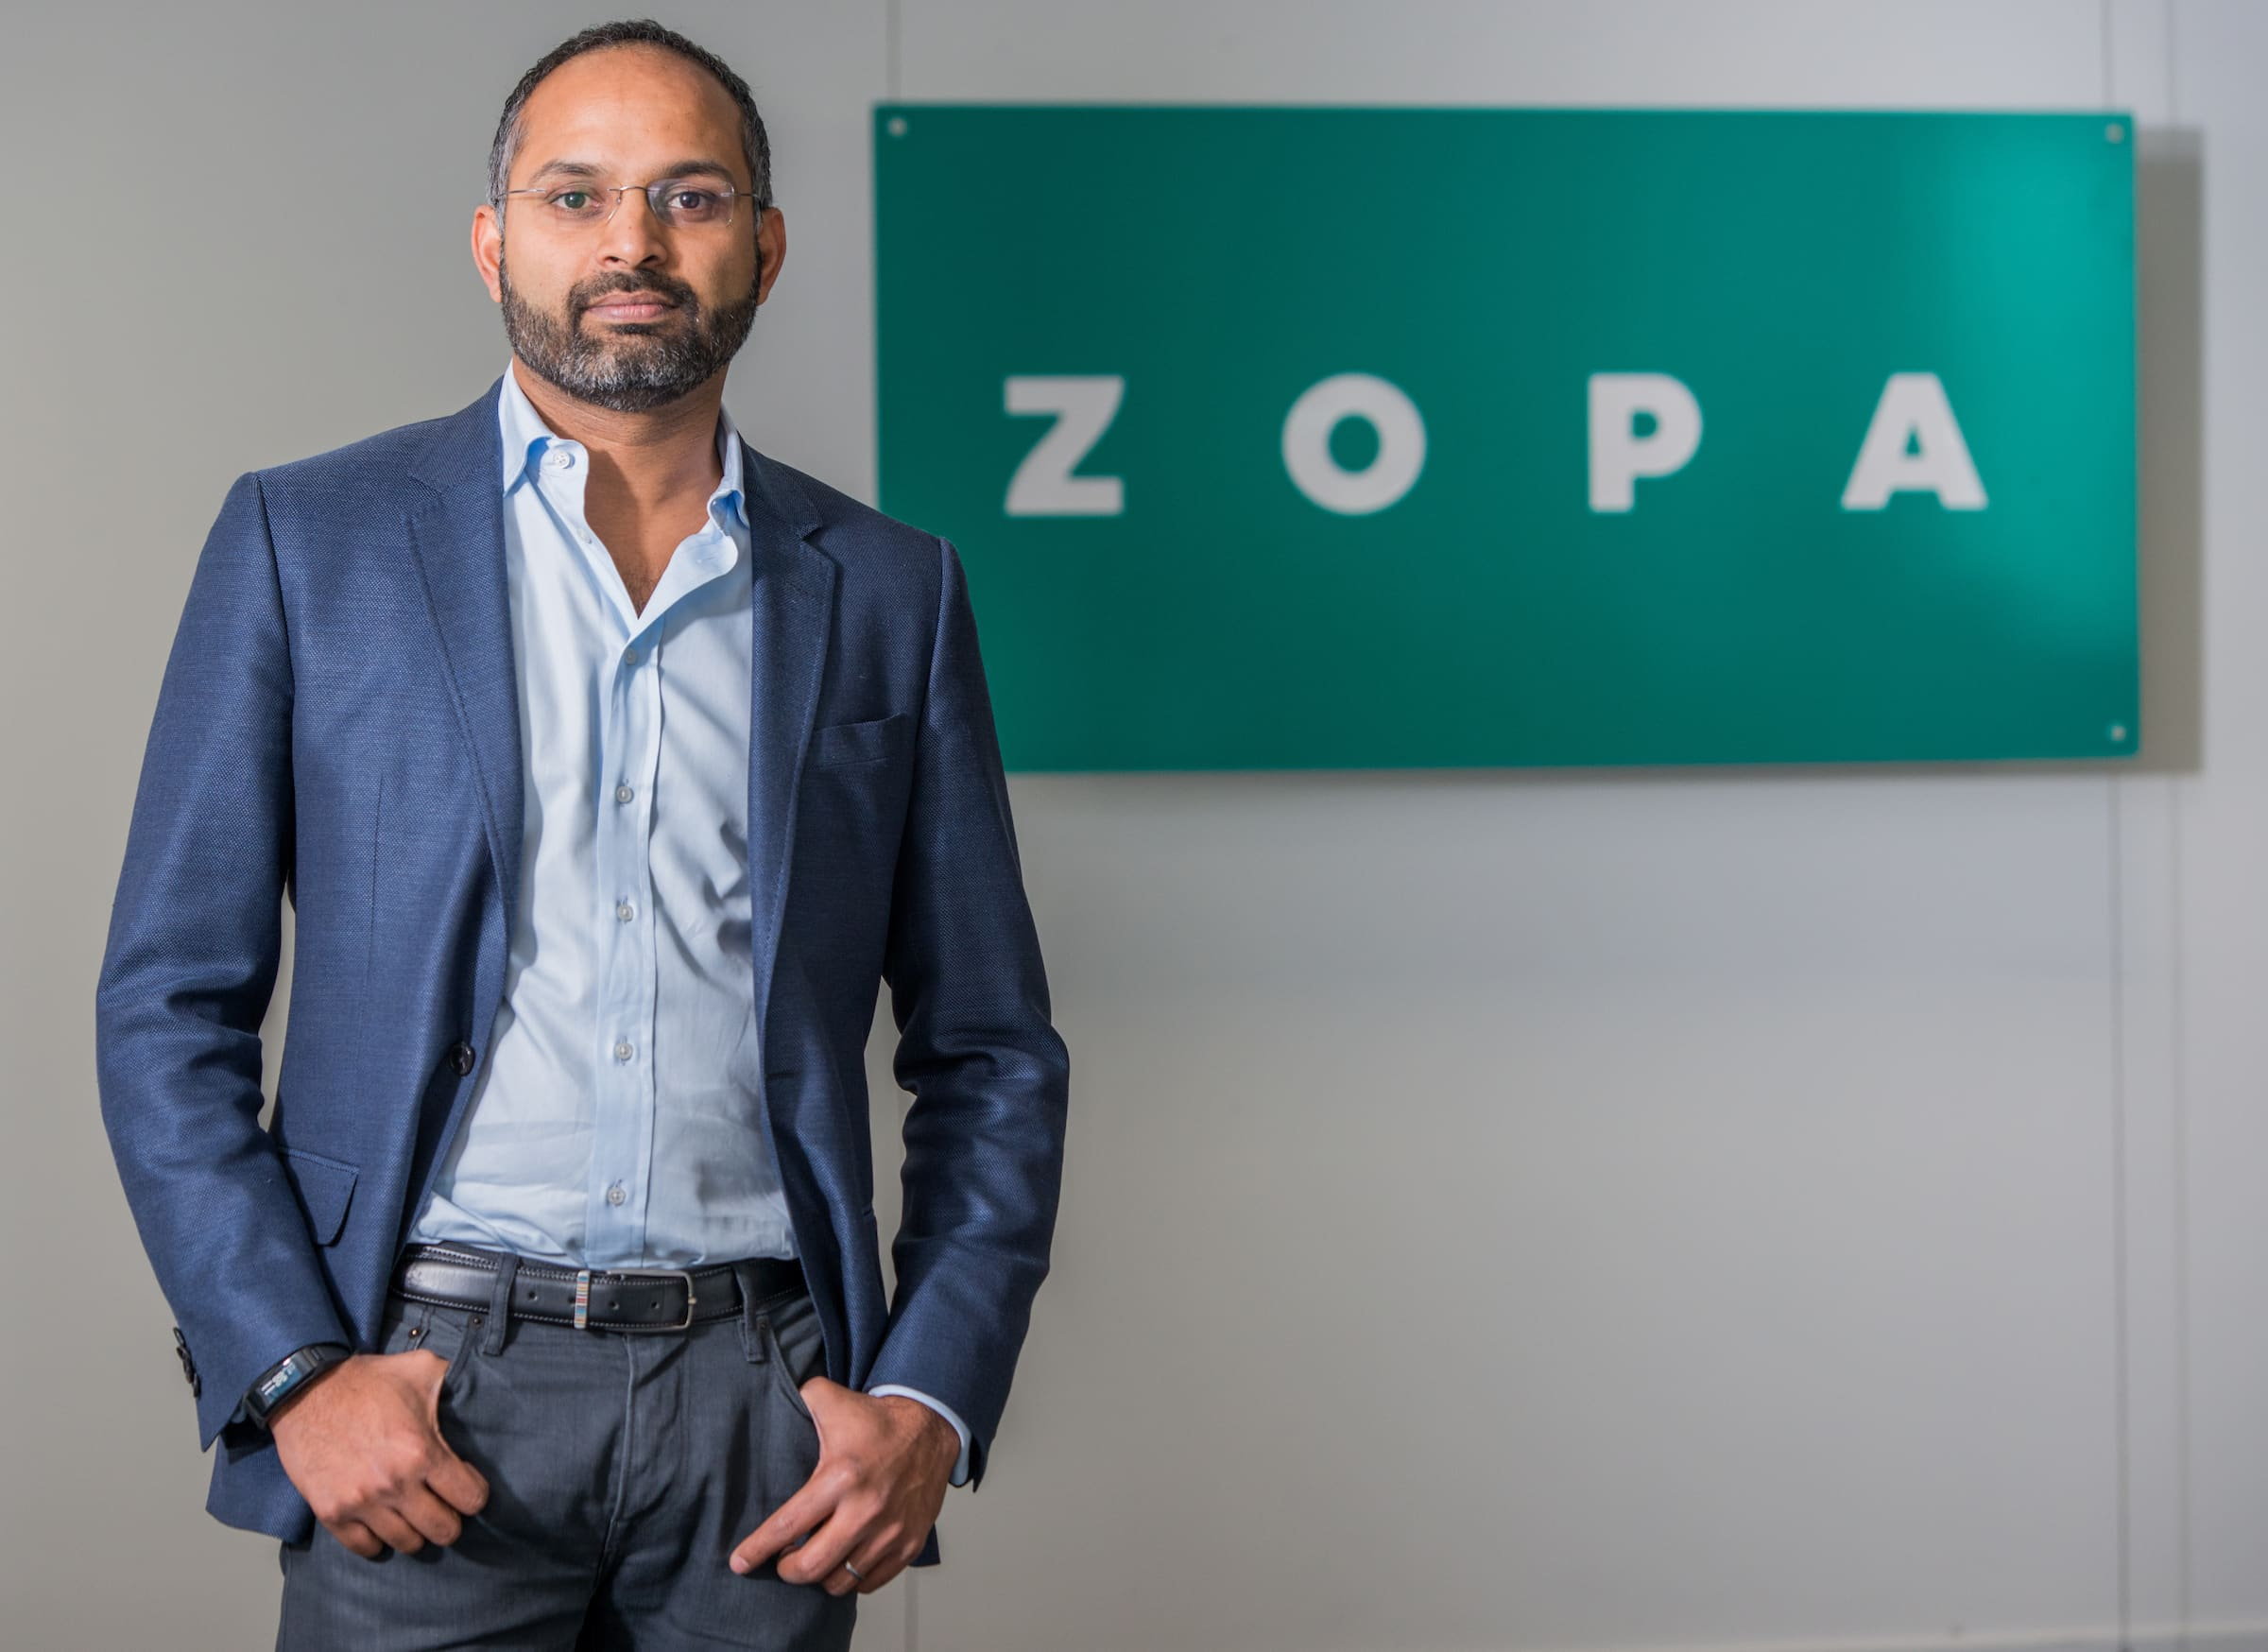 Zopa raises $41 2 million for challenger bank launch